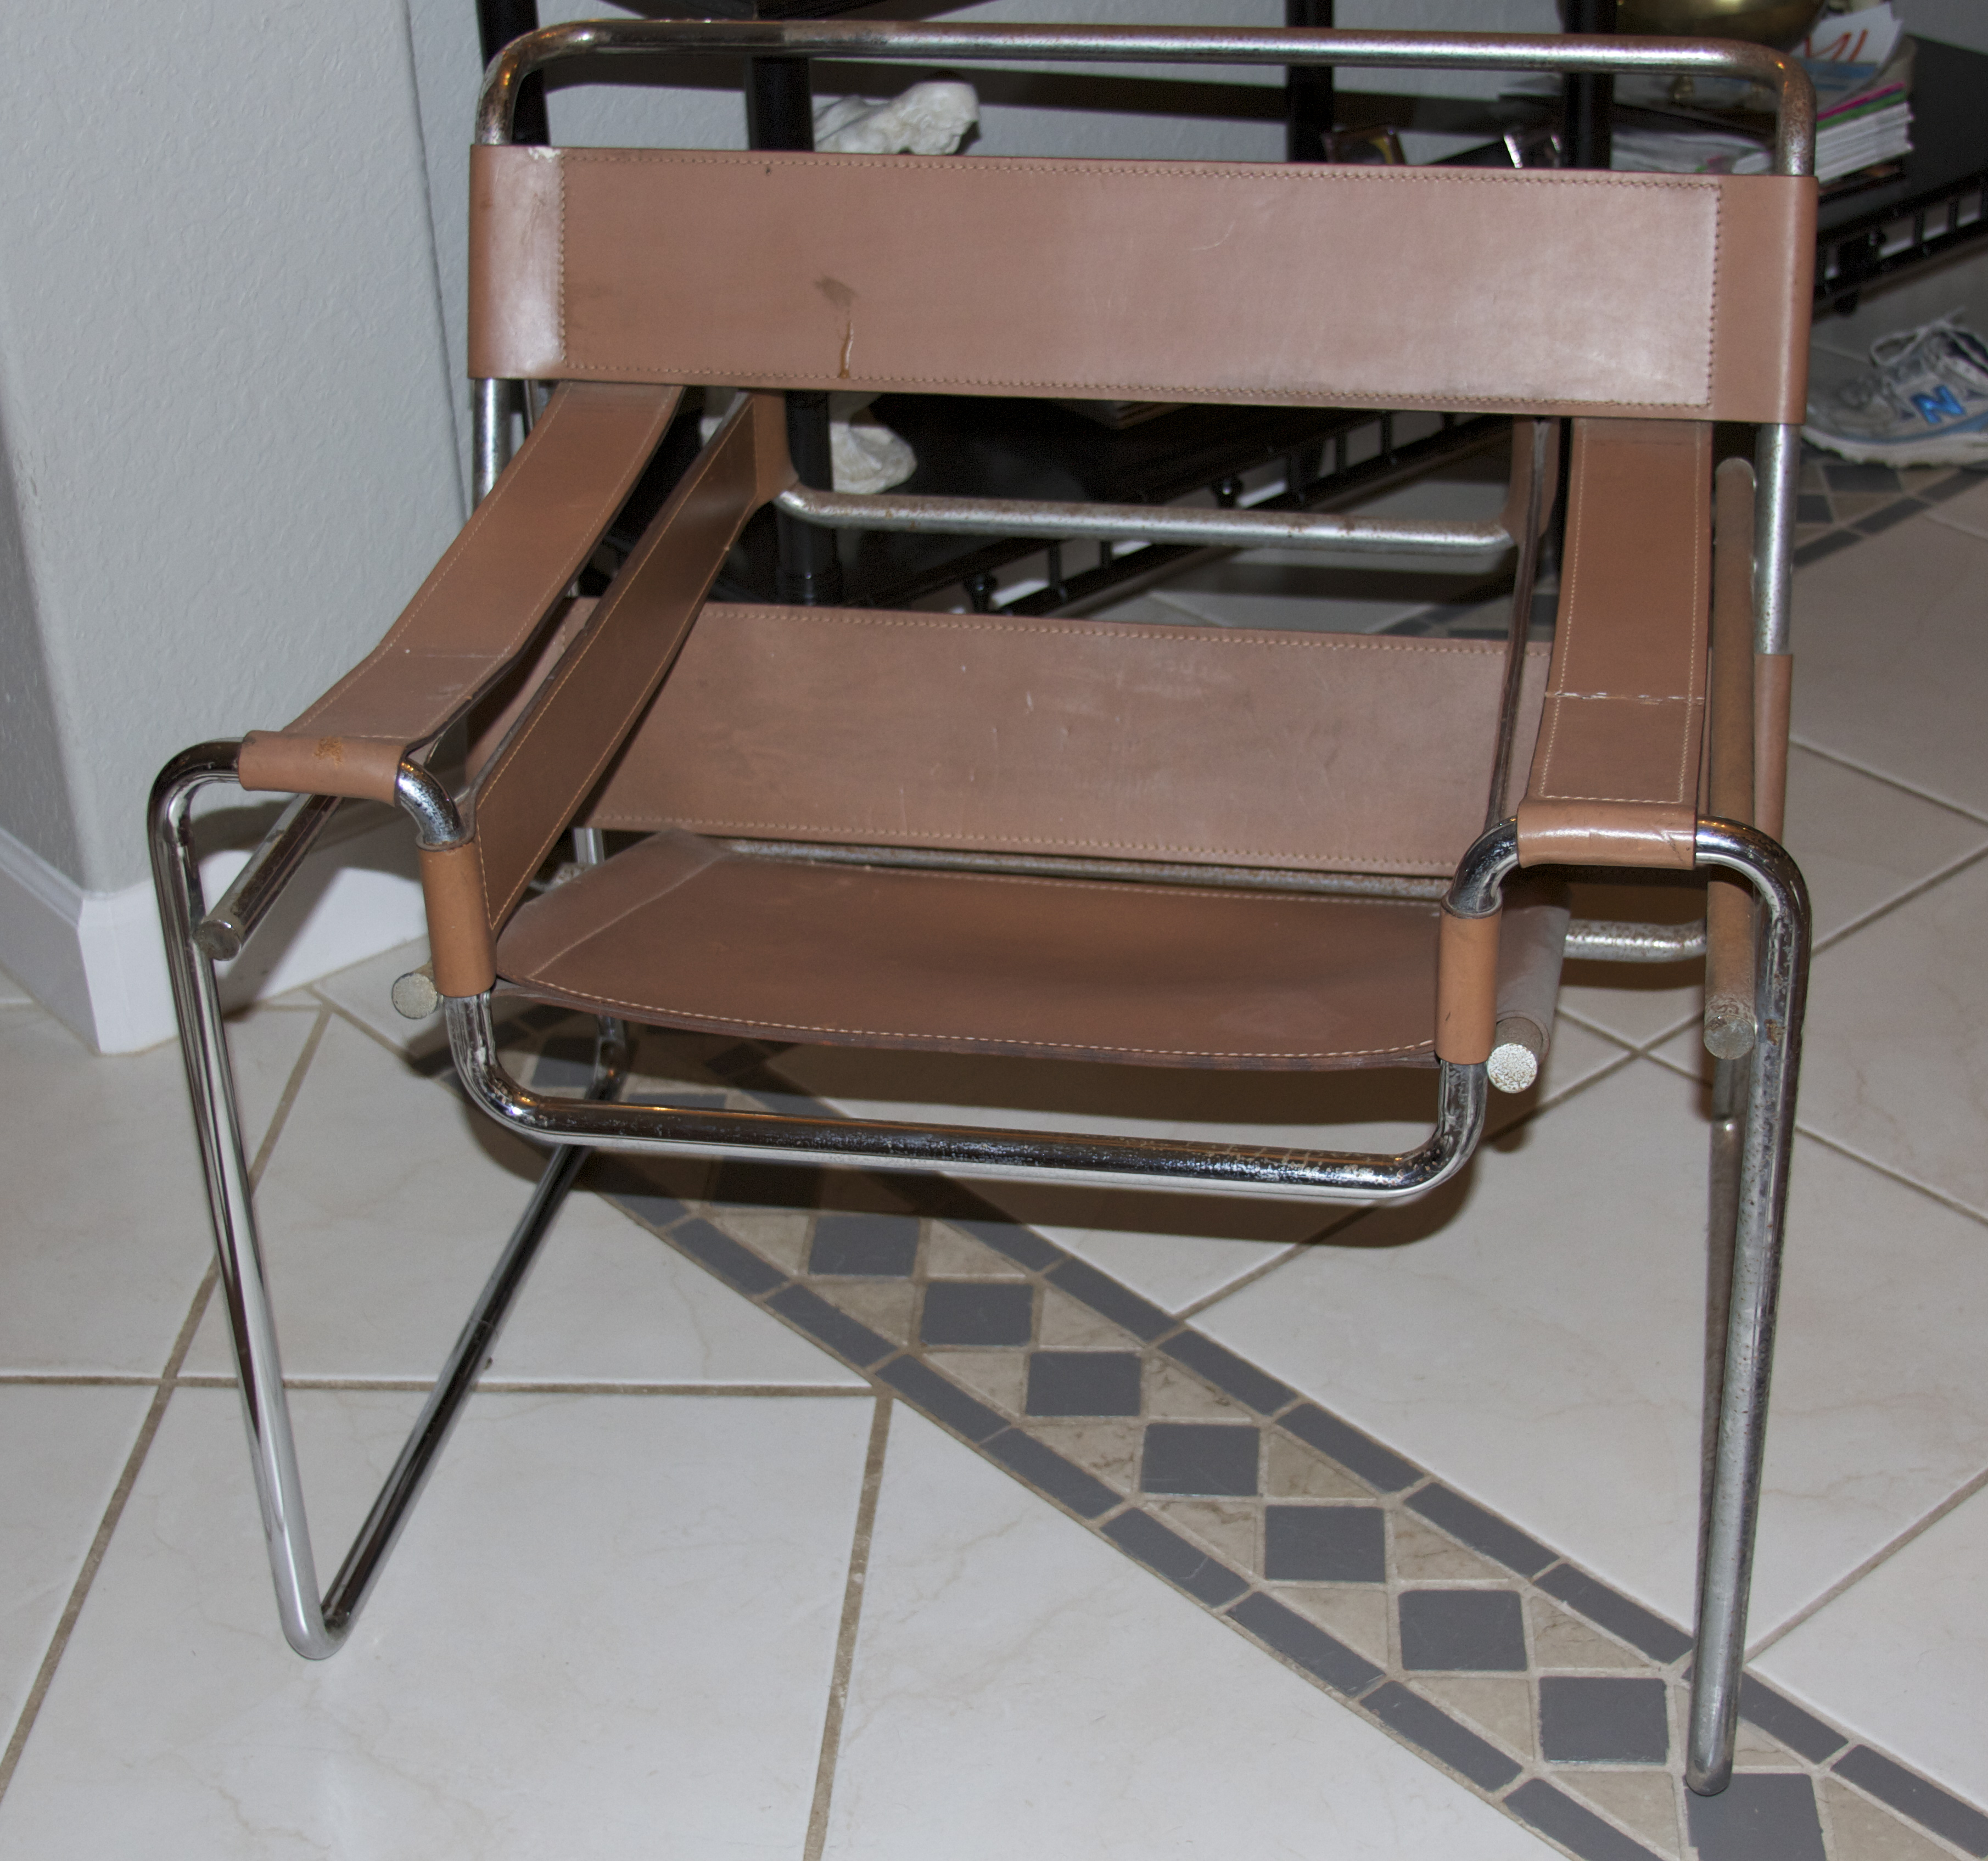 My Wassily Chair and other thrift store finds - Pinterest Addict